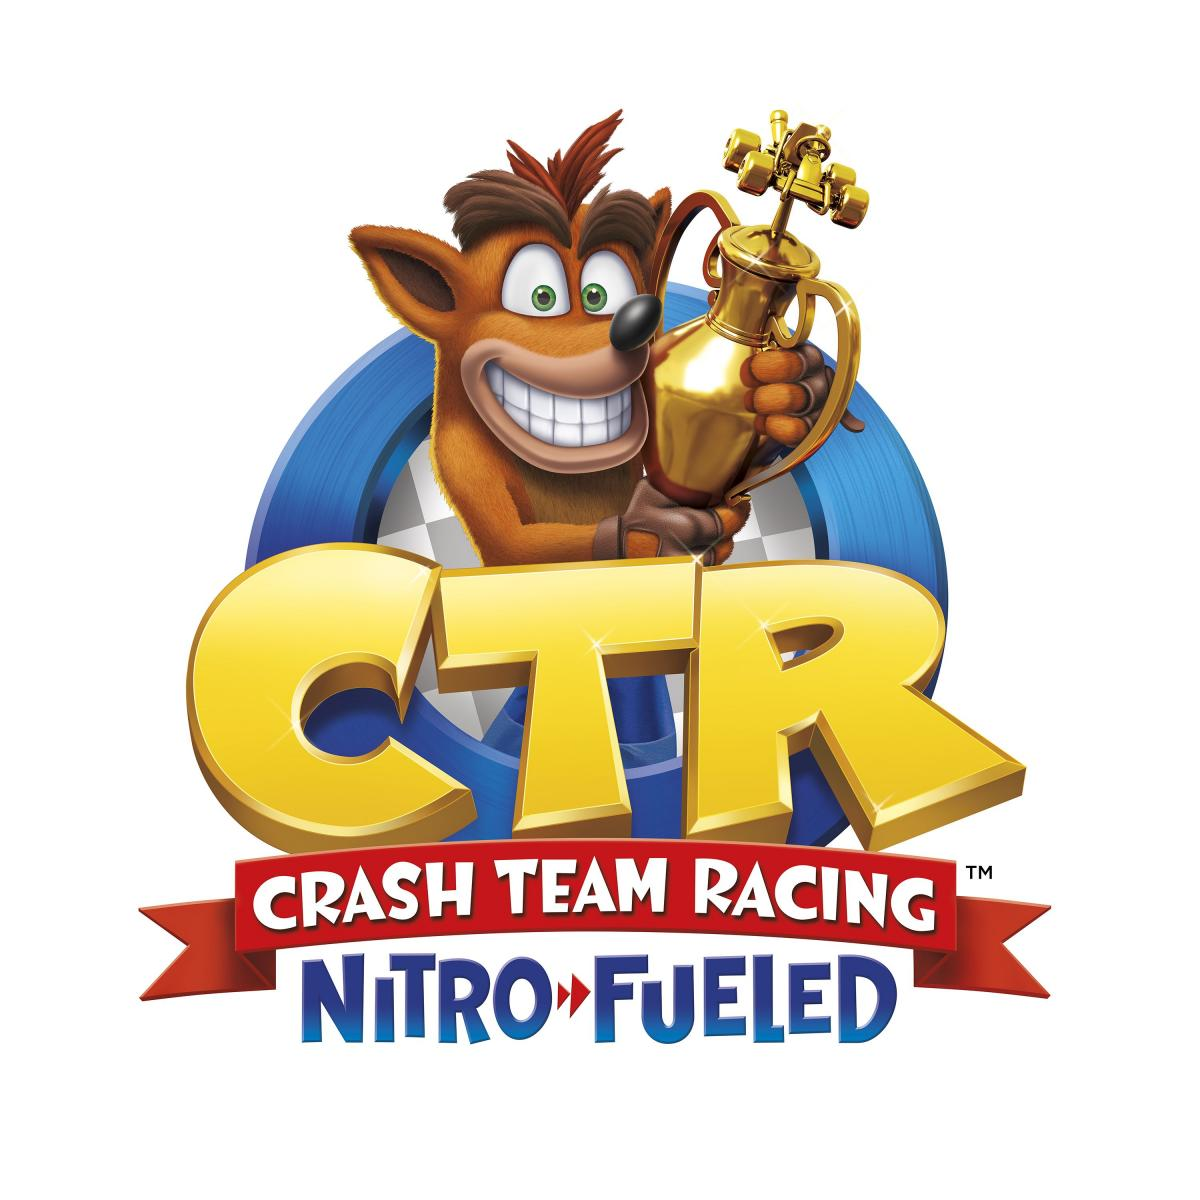 Image Crash Team Racing Nitro-Fueled 6